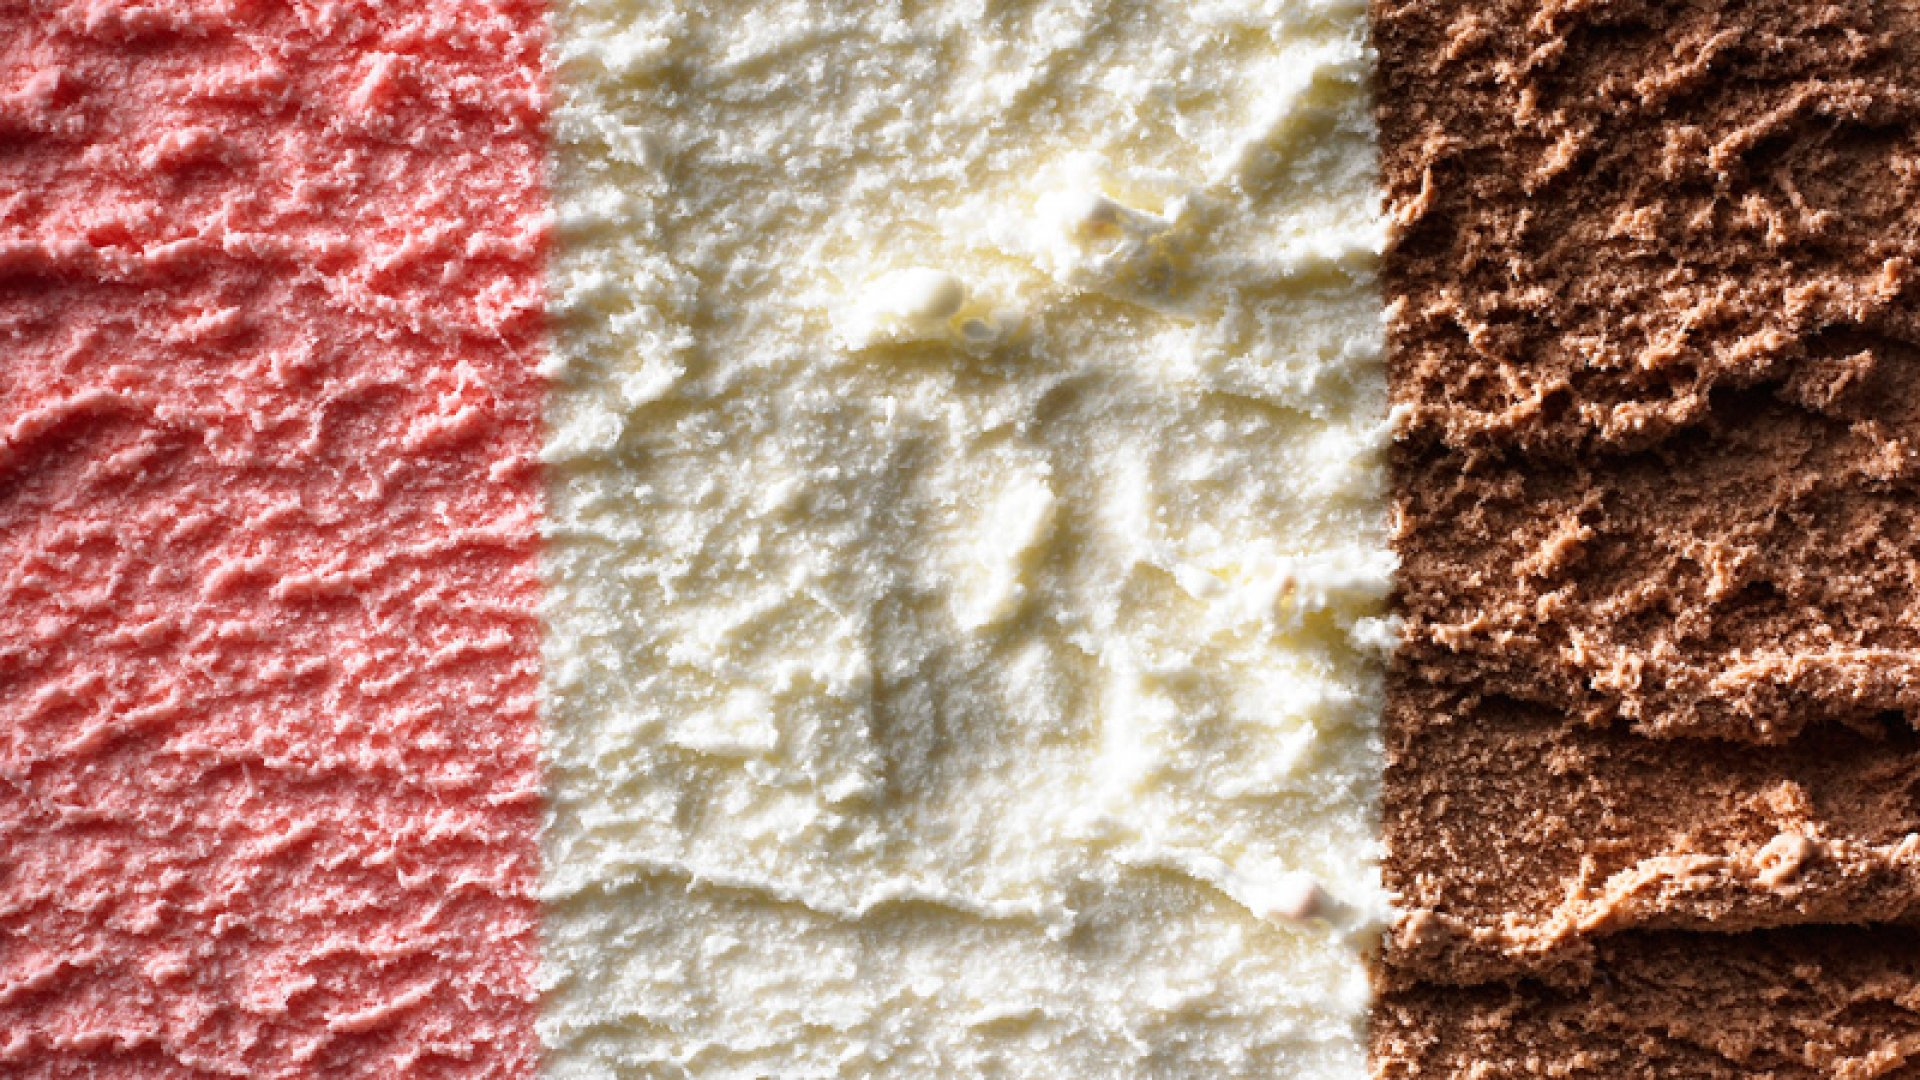 This Ice Cream Startup Is Making Organic Versions of Ben & Jerry's Flavors